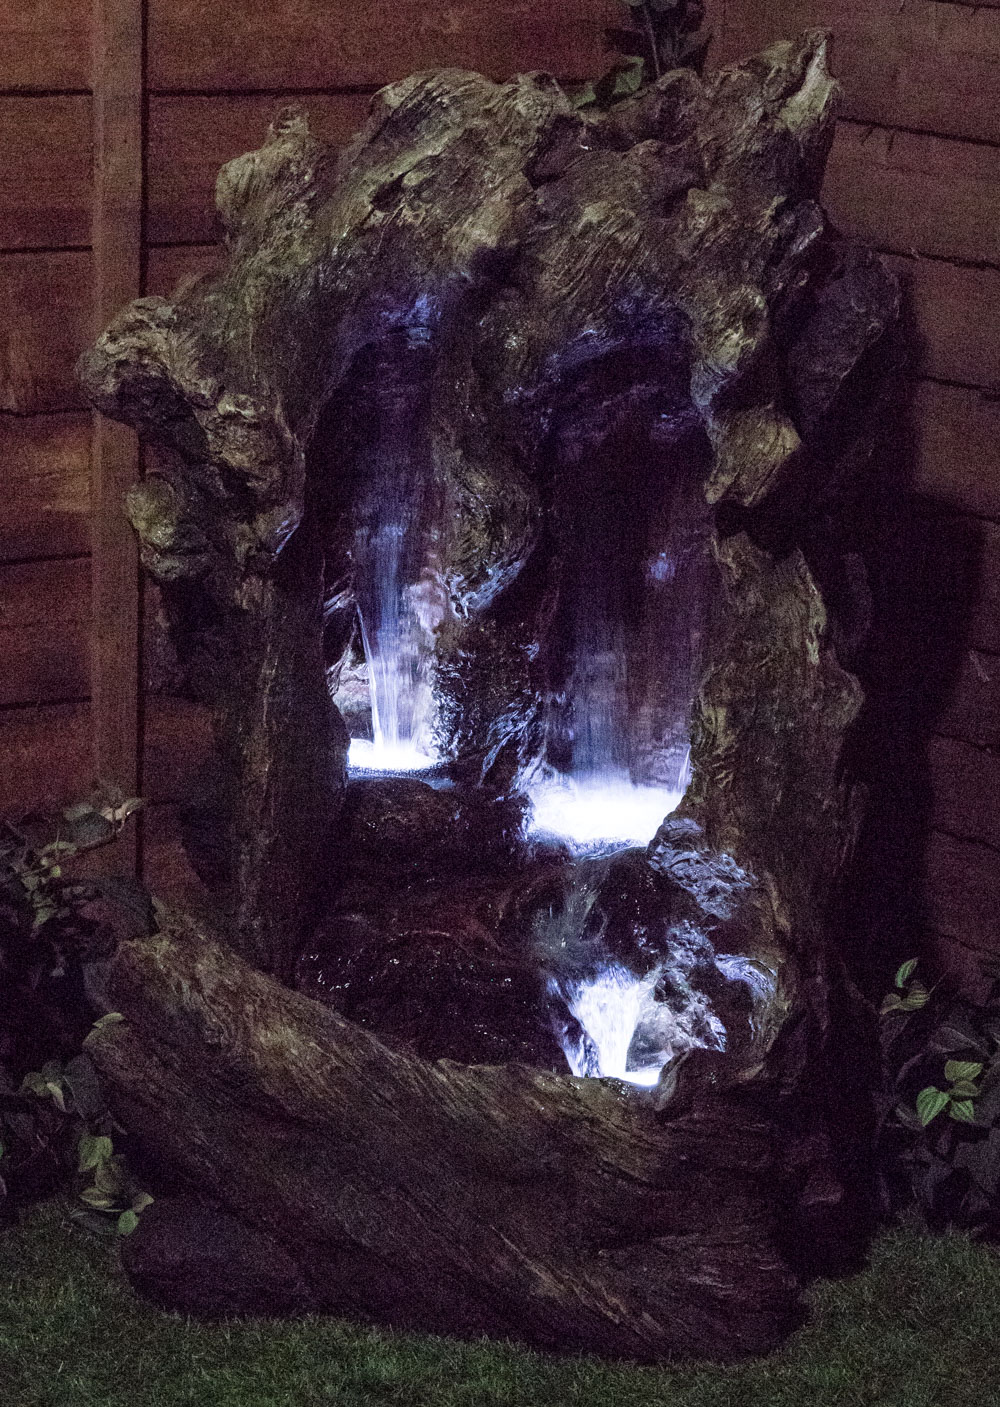 1m Colorado Falls Cascade Water Features With Lights By